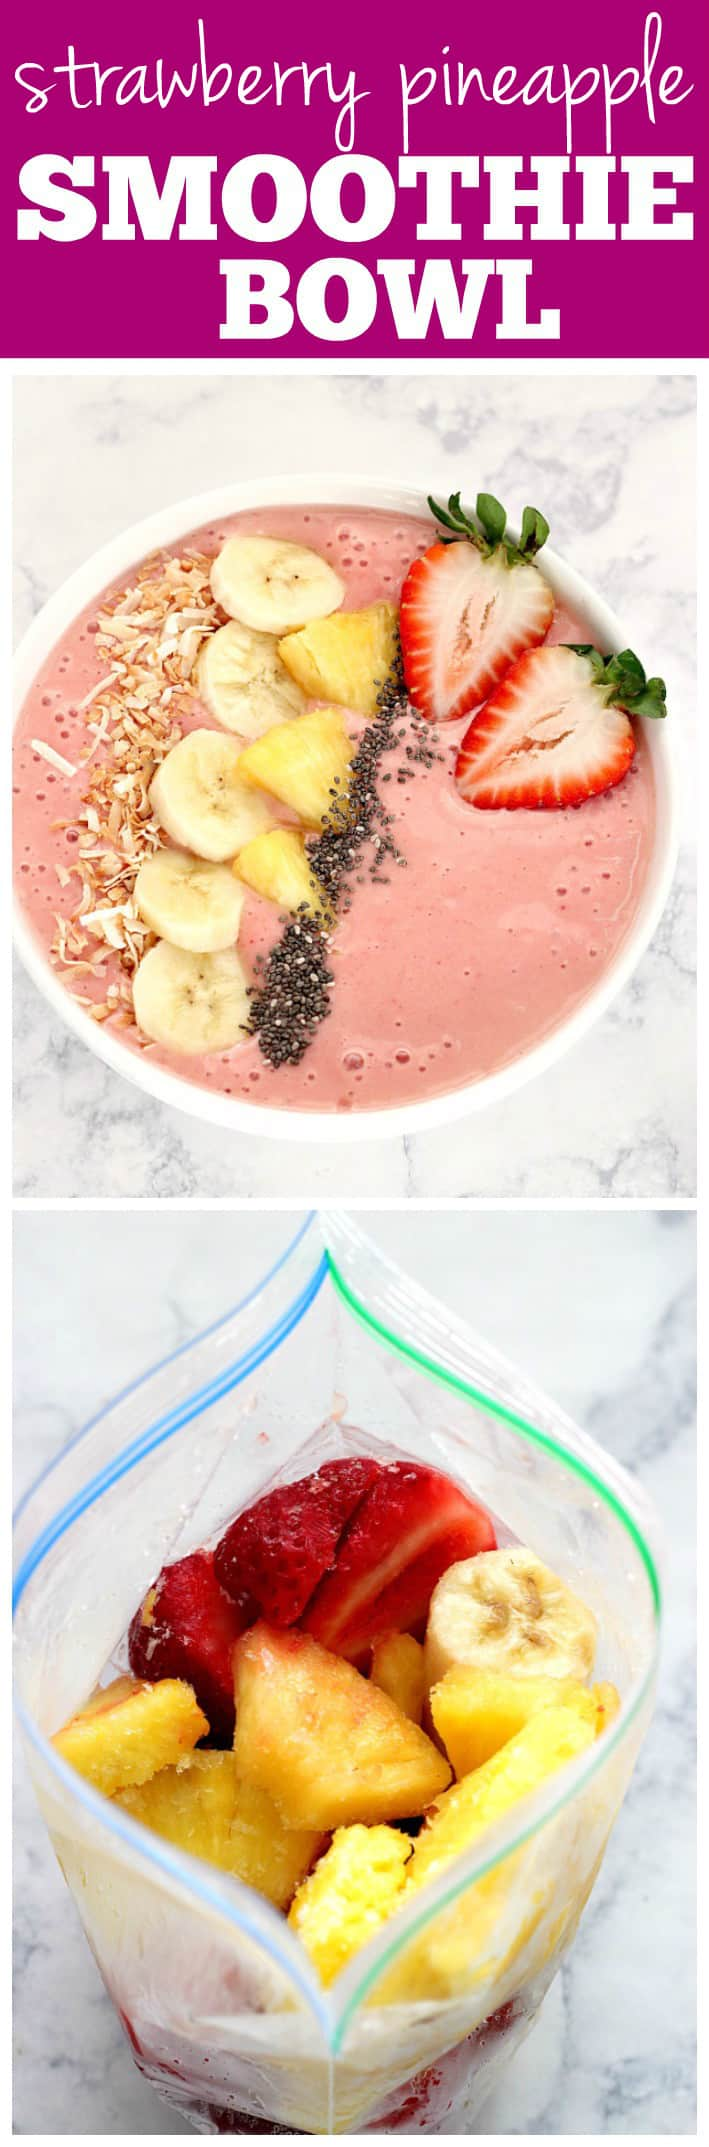 smoothie bowl recipe long 1 Strawberry Pineapple Smoothie Bowl Recipe